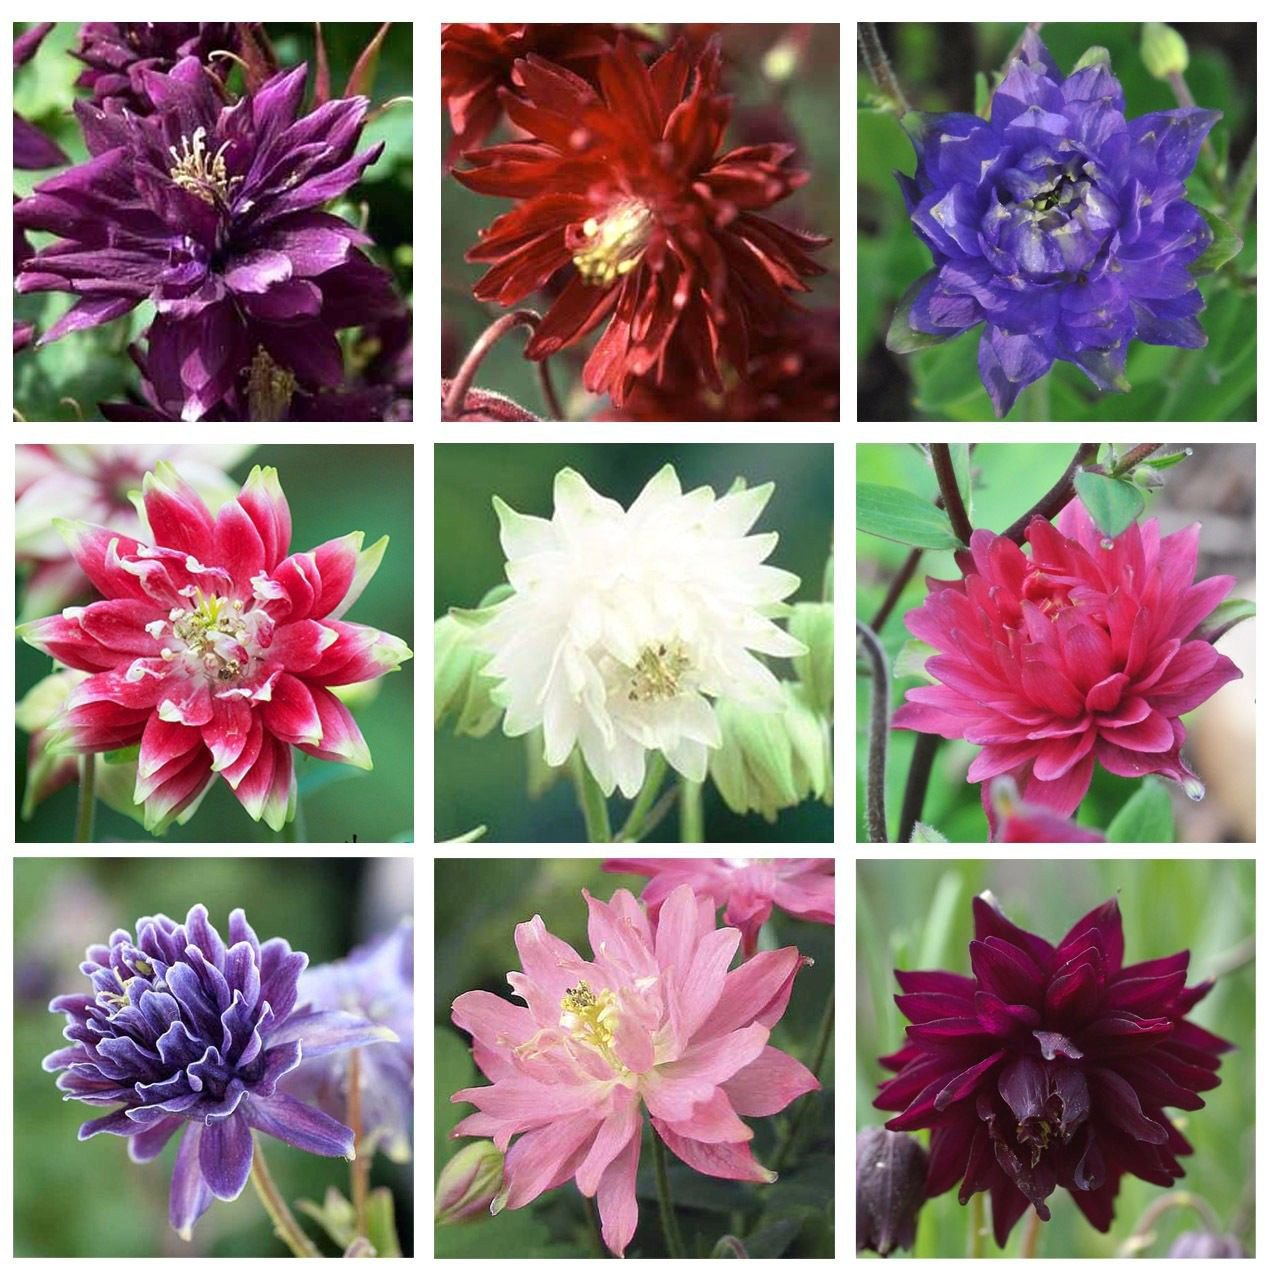 Columbine tall double mix 100 seeds Aquilegia vulgaris *Gardening *SHIPPING FROM US* CombSH A76